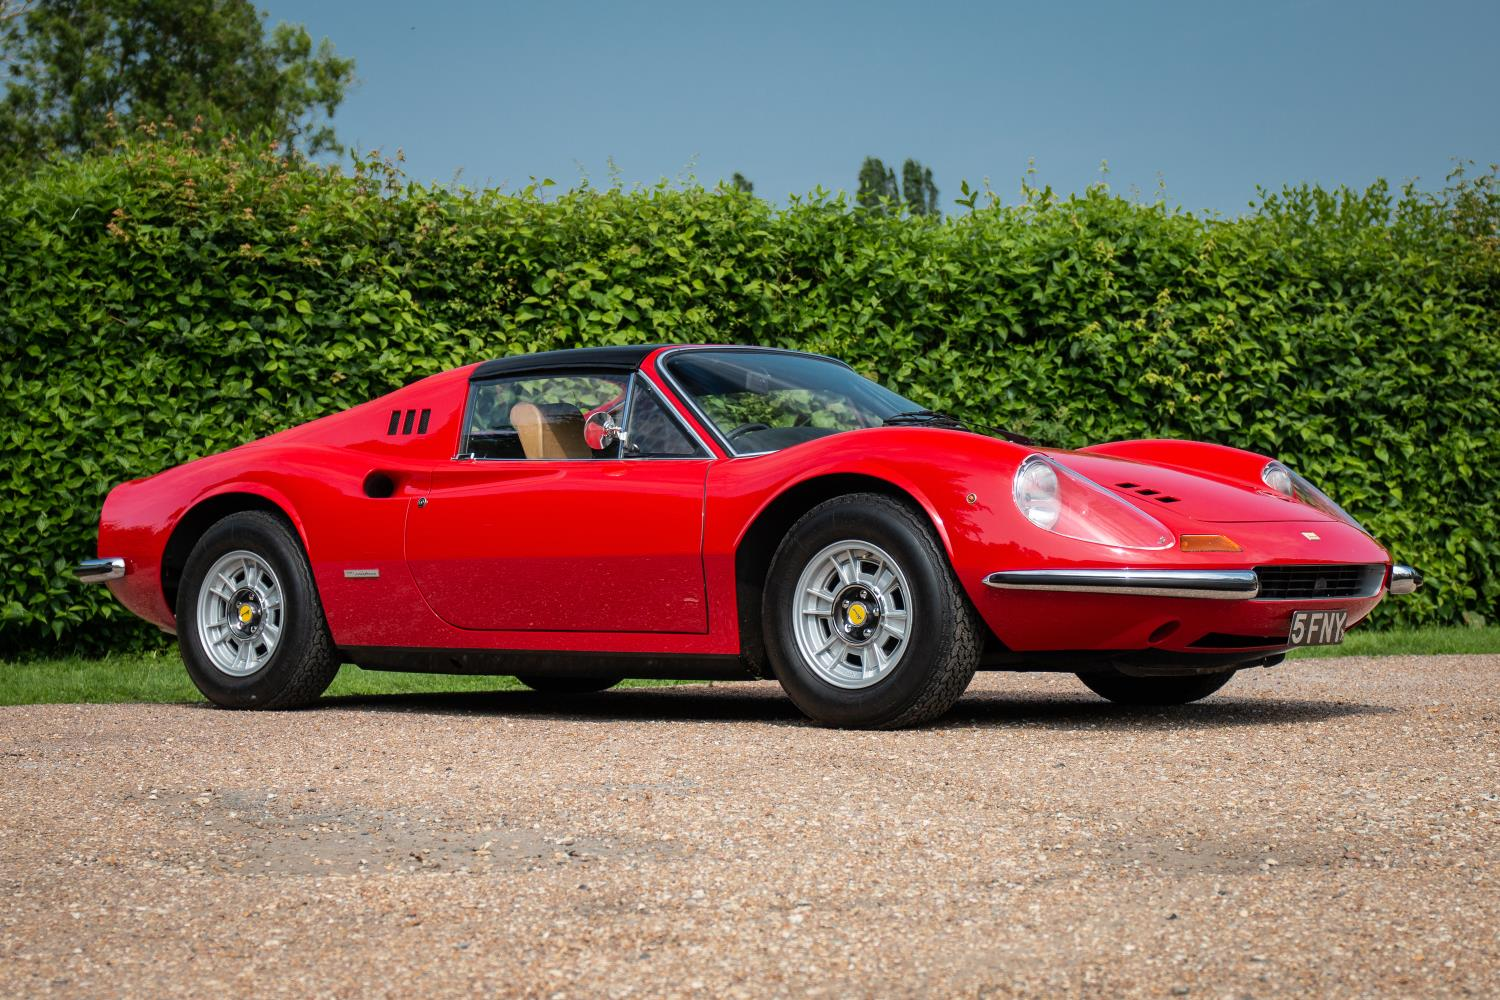 Ferrari S Tribute Goes To Auction At The Silverstone Classic Endurance Classic English